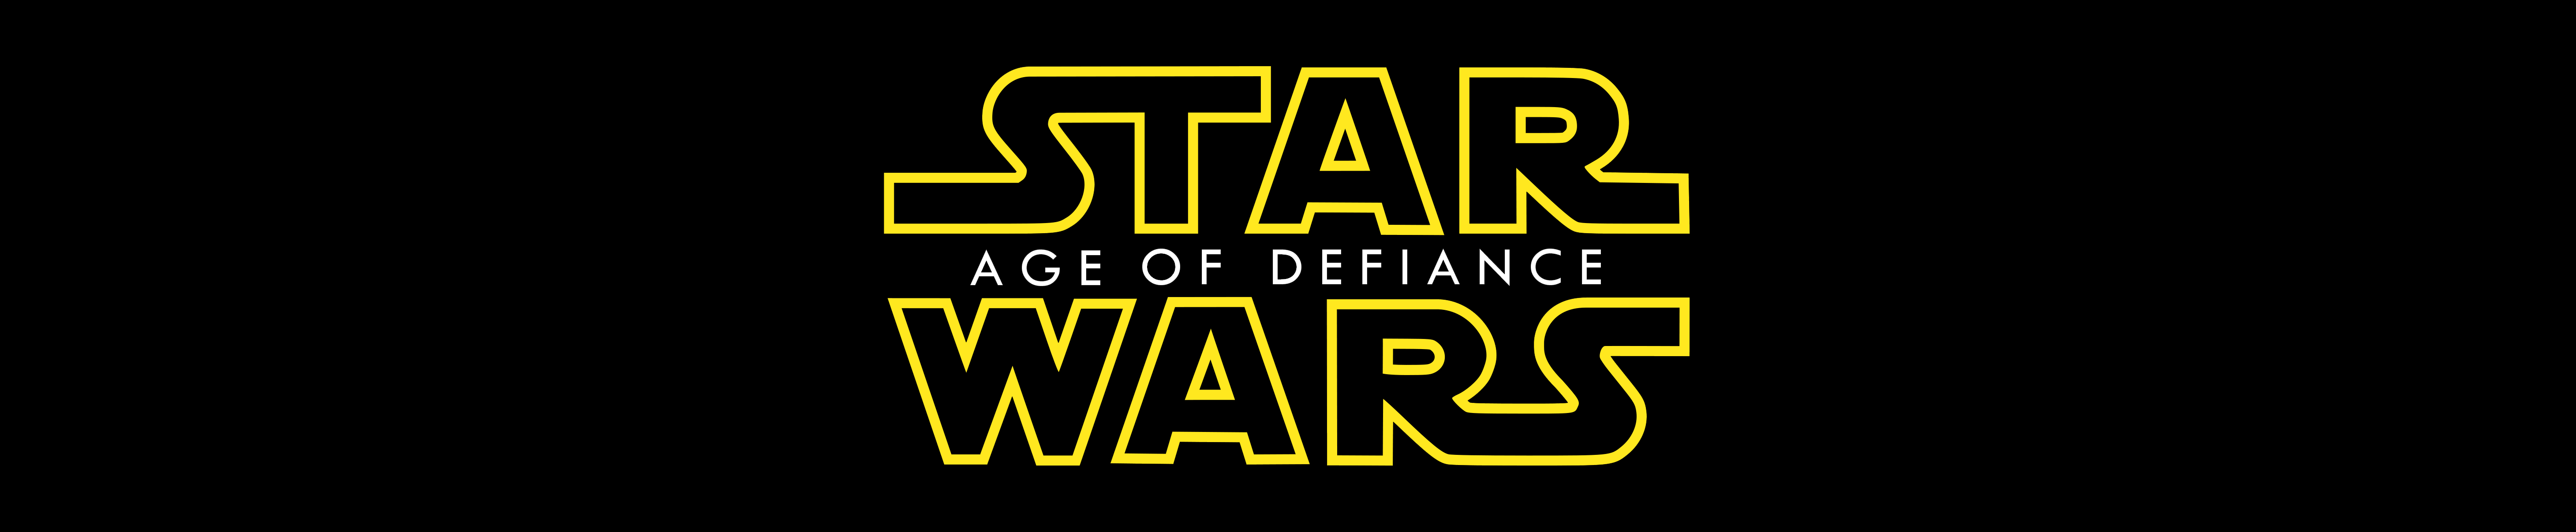 Star wars   age of defiance   copy